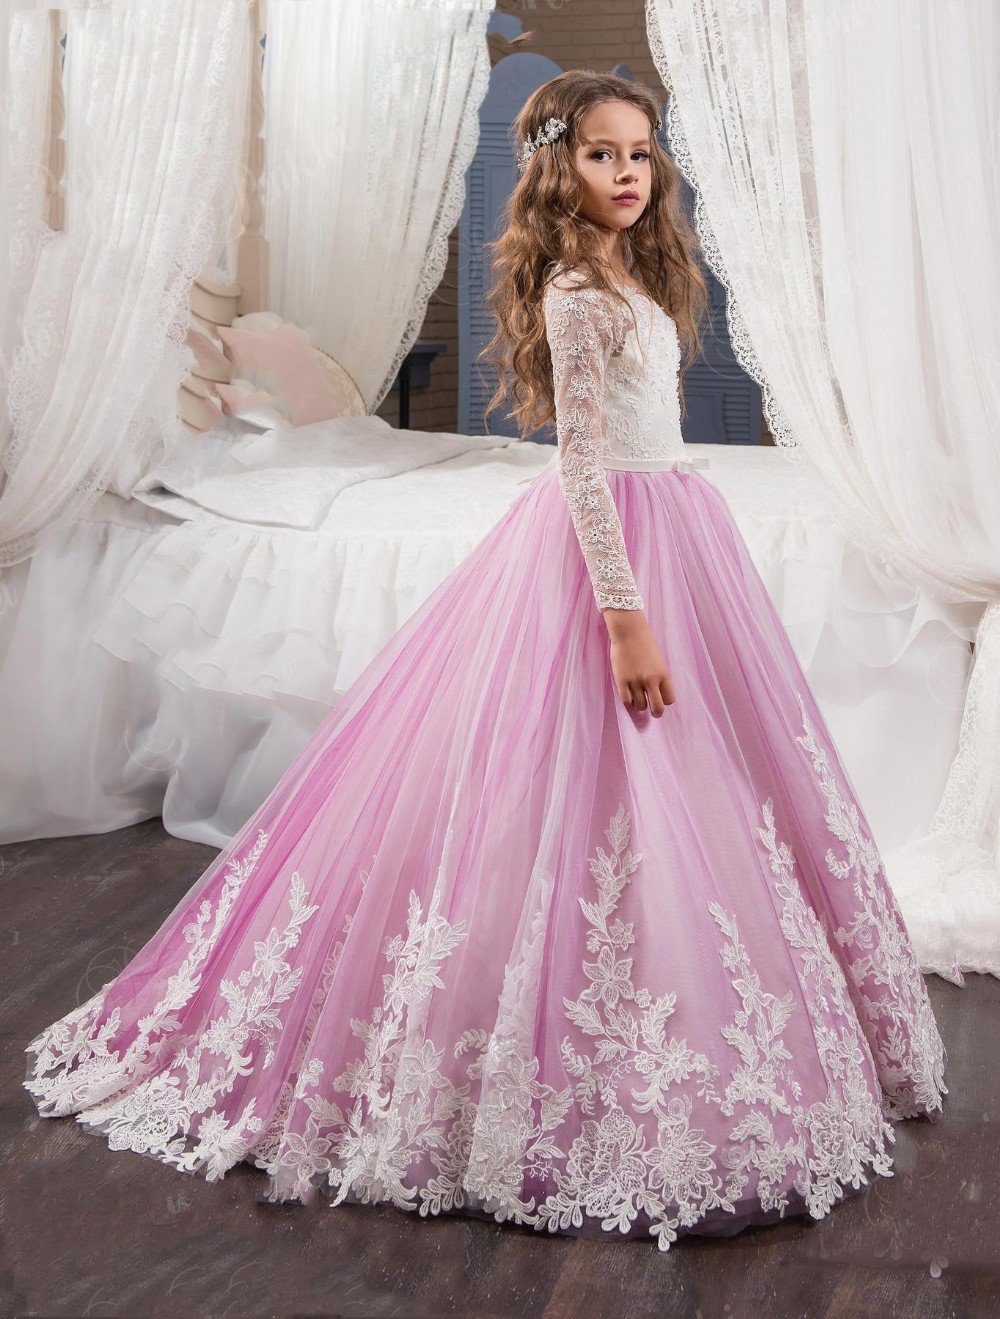 2017-Princess-Long-Sleeves-Lace-Flower-Girl-Dresses-2017-Vestidos-Puffy-Pink-Kids-Evening-Ball-Gown